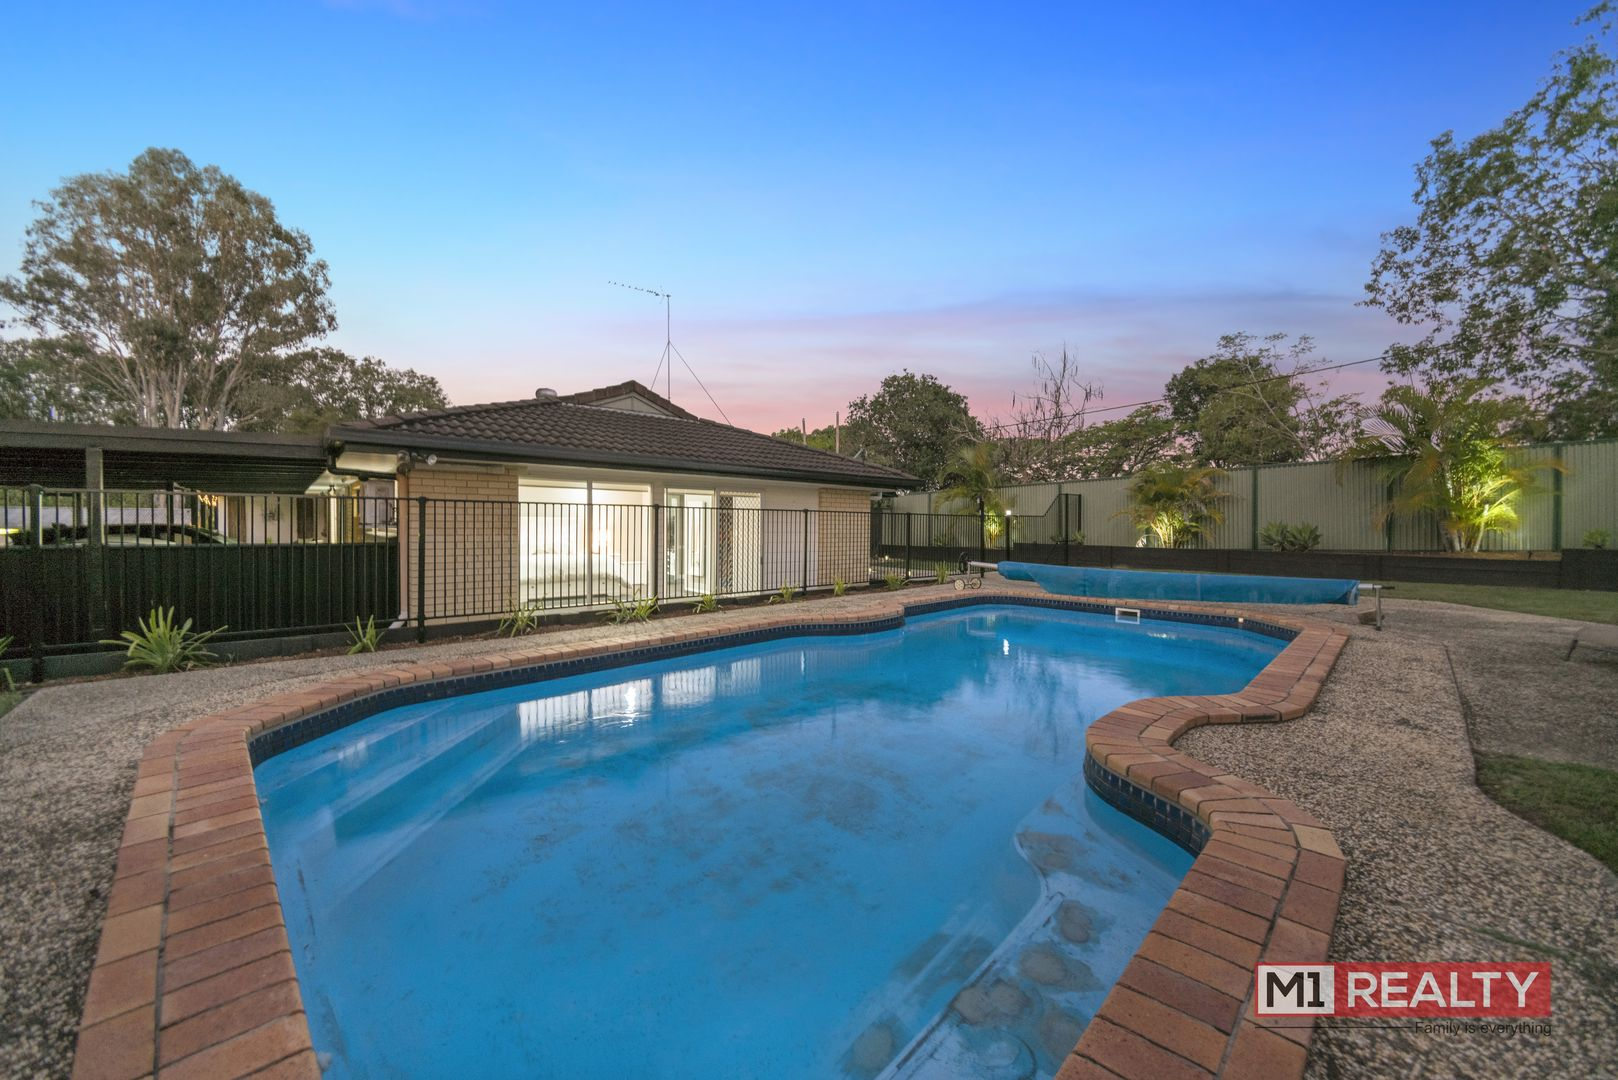 204 Latimers Crossing Road, Advancetown QLD 4211, Image 0